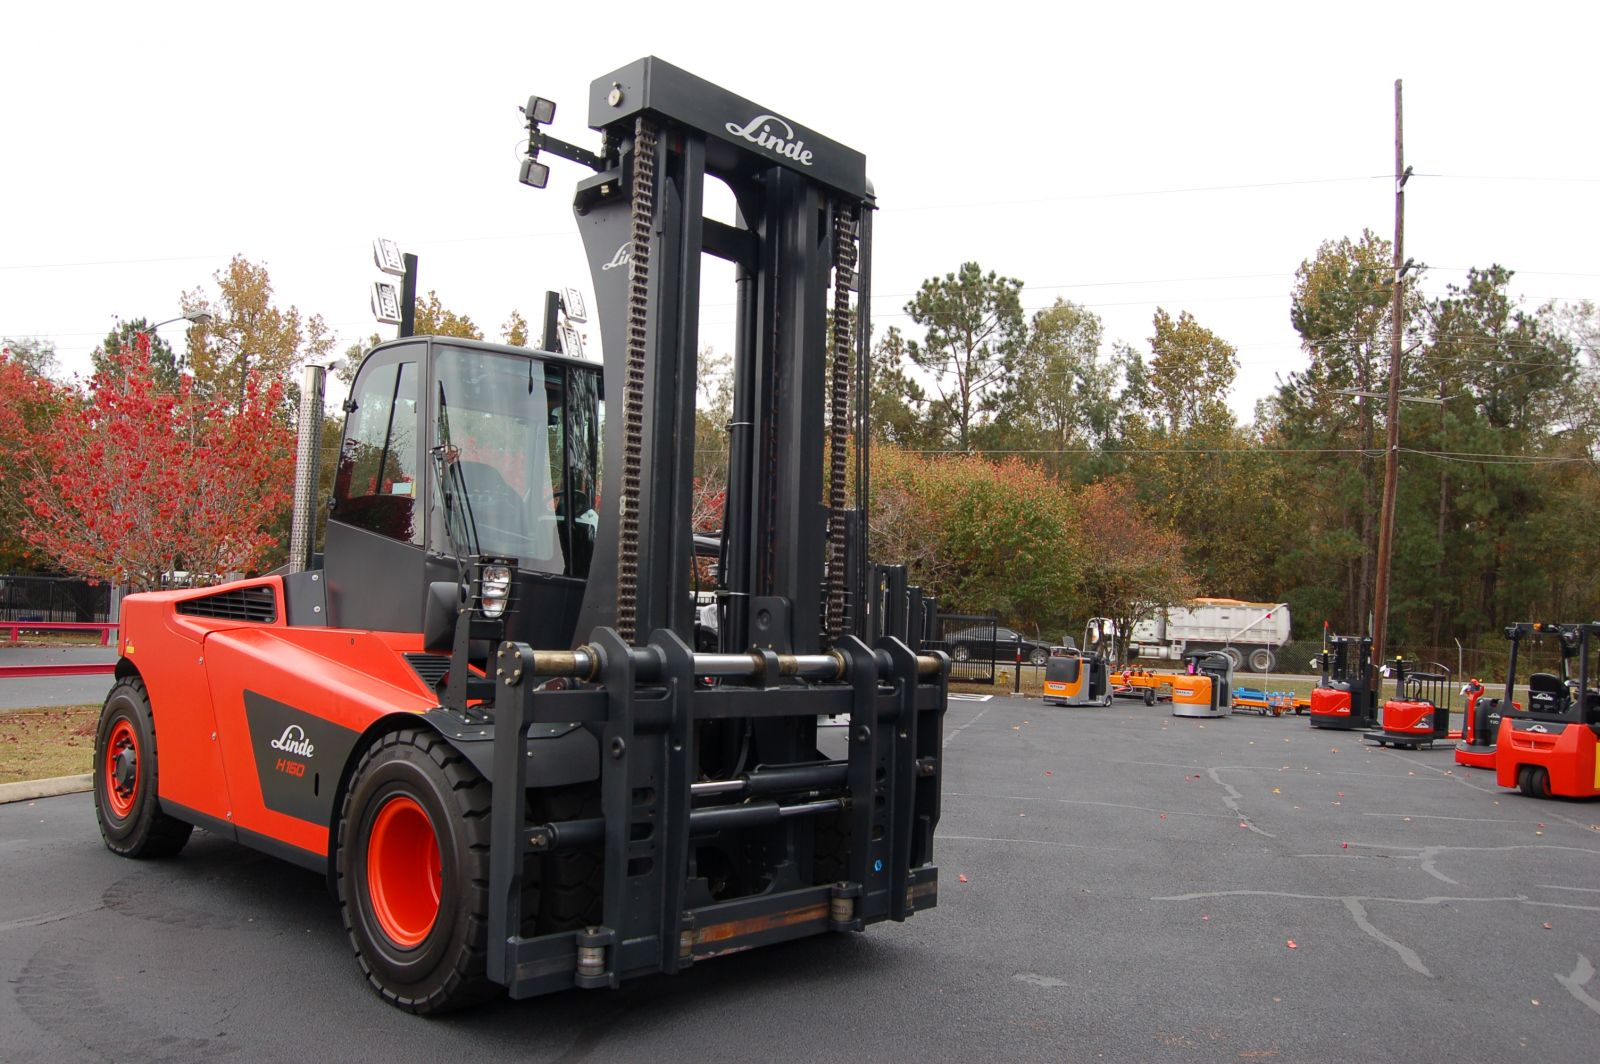 Kion North America, a manufacturer and supplier of materials handling forklifts and industrial trucks, is headquartered in Summerville. (Photo/Andy Owens)